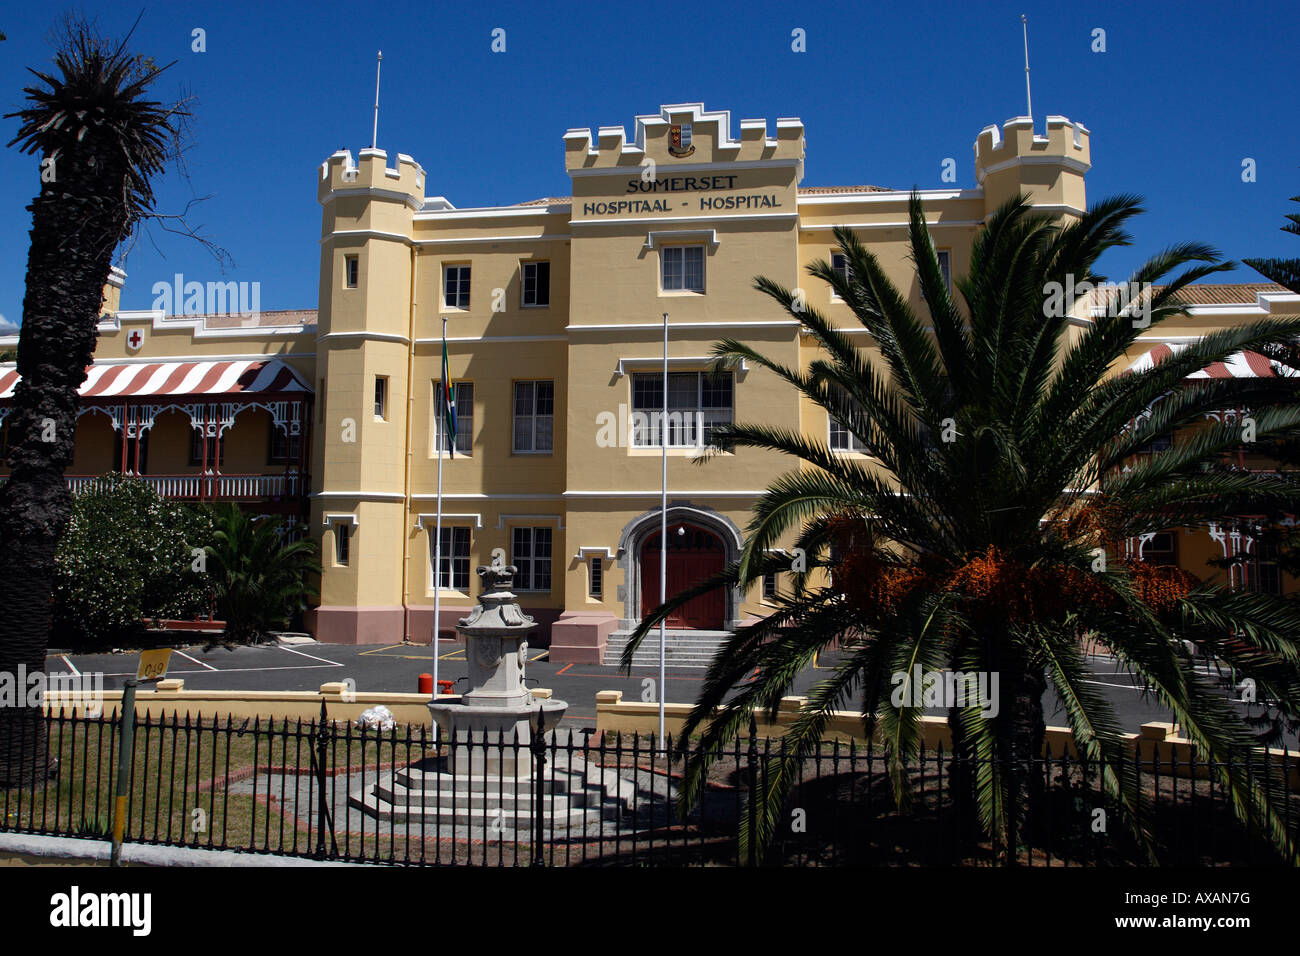 somerset hospital from granger bay boulevard cape town western cape province south africa - Stock Image